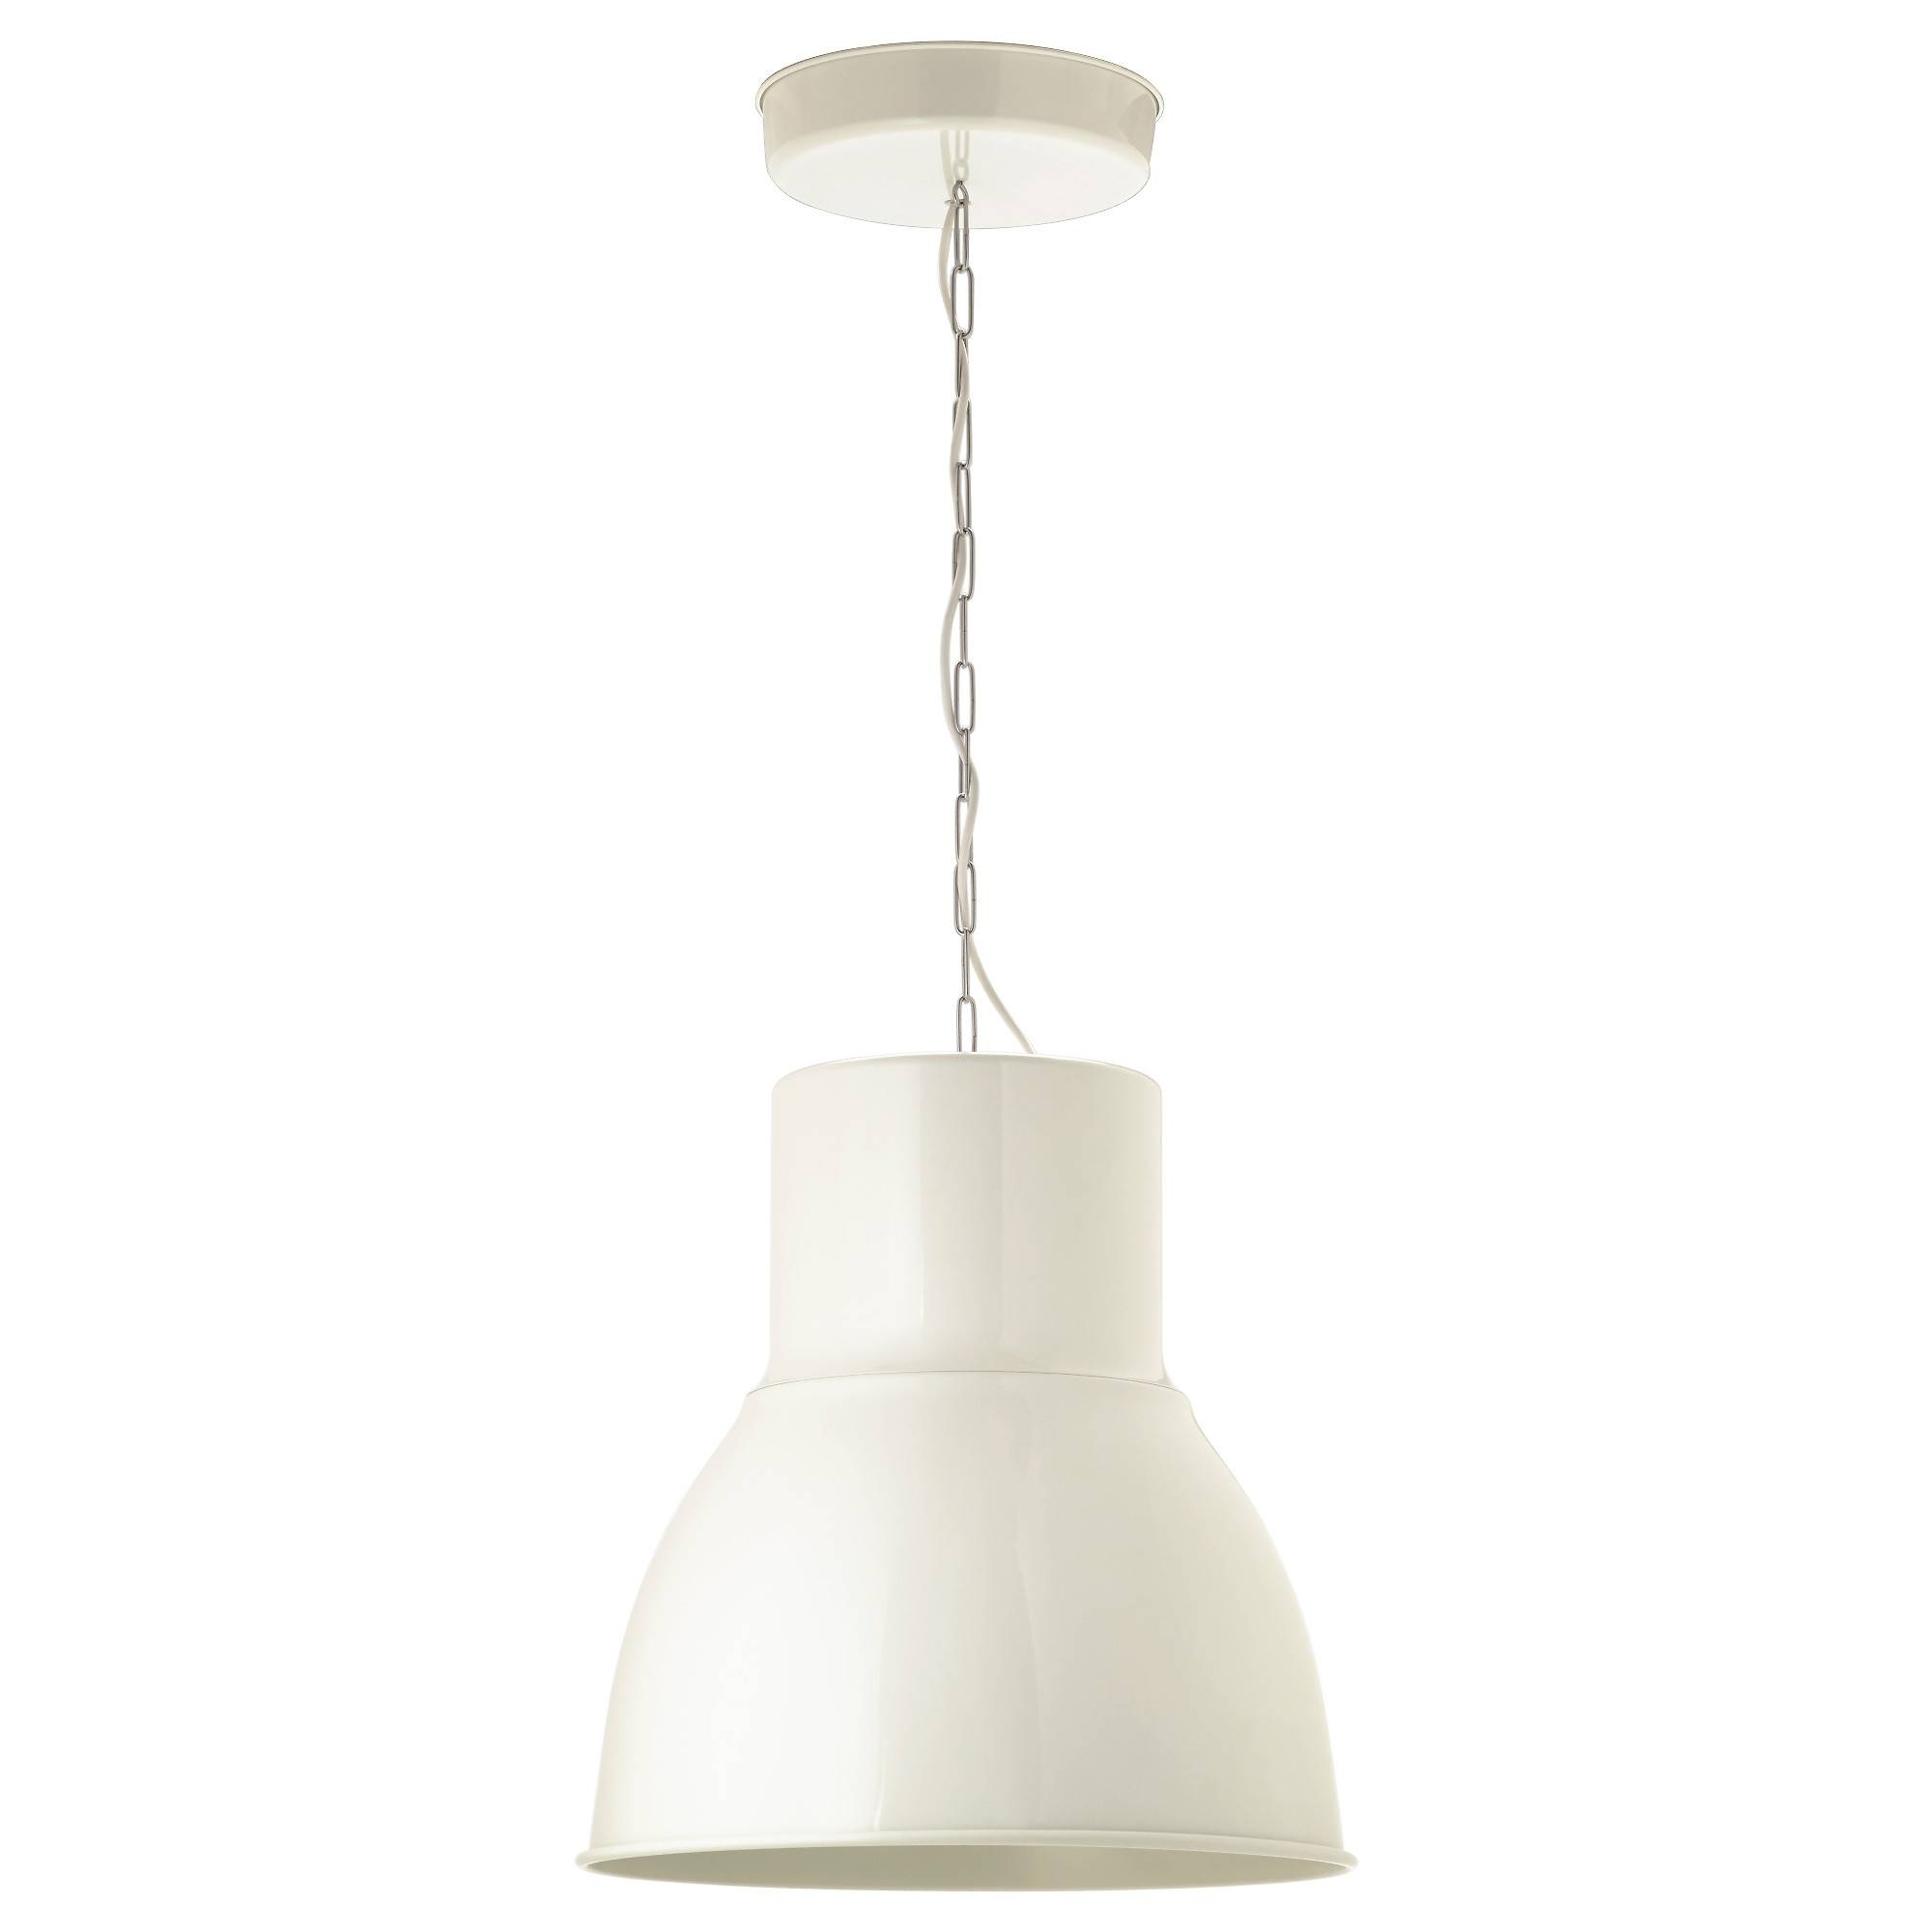 Pendant Lights & Lamp Shades – Ikea Intended For Ikea Pendent Lights (View 13 of 15)